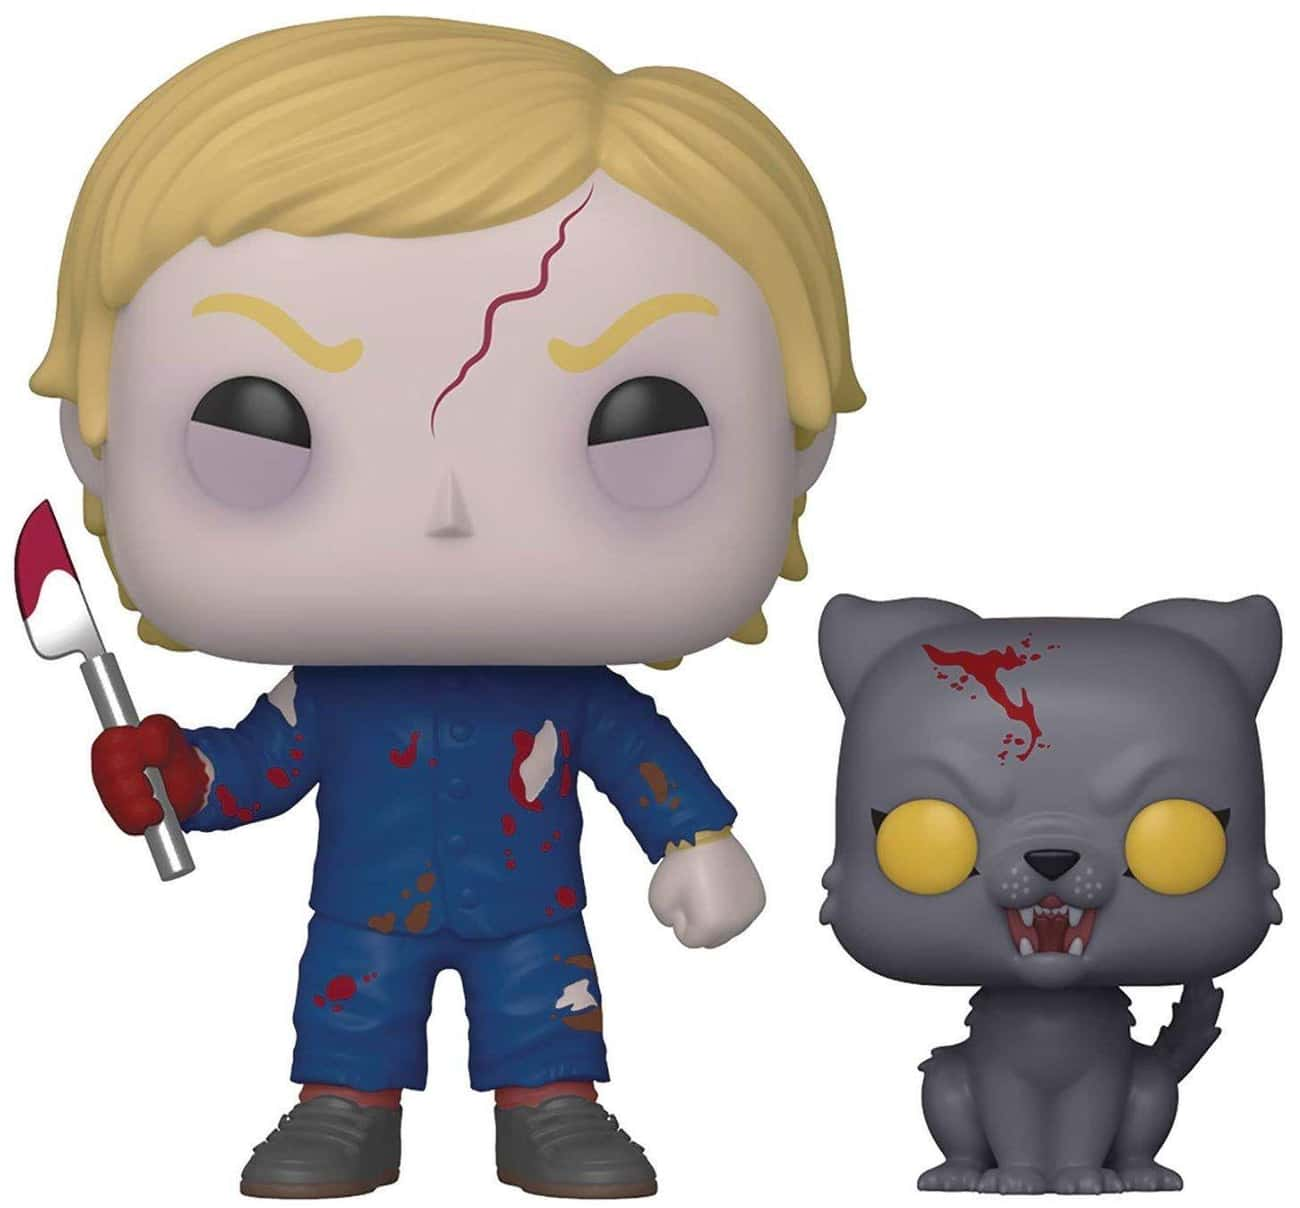 Undead Gage And Church From 'P is listed (or ranked) 4 on the list Creepy Funkos Every Horror Movie Fan Needs